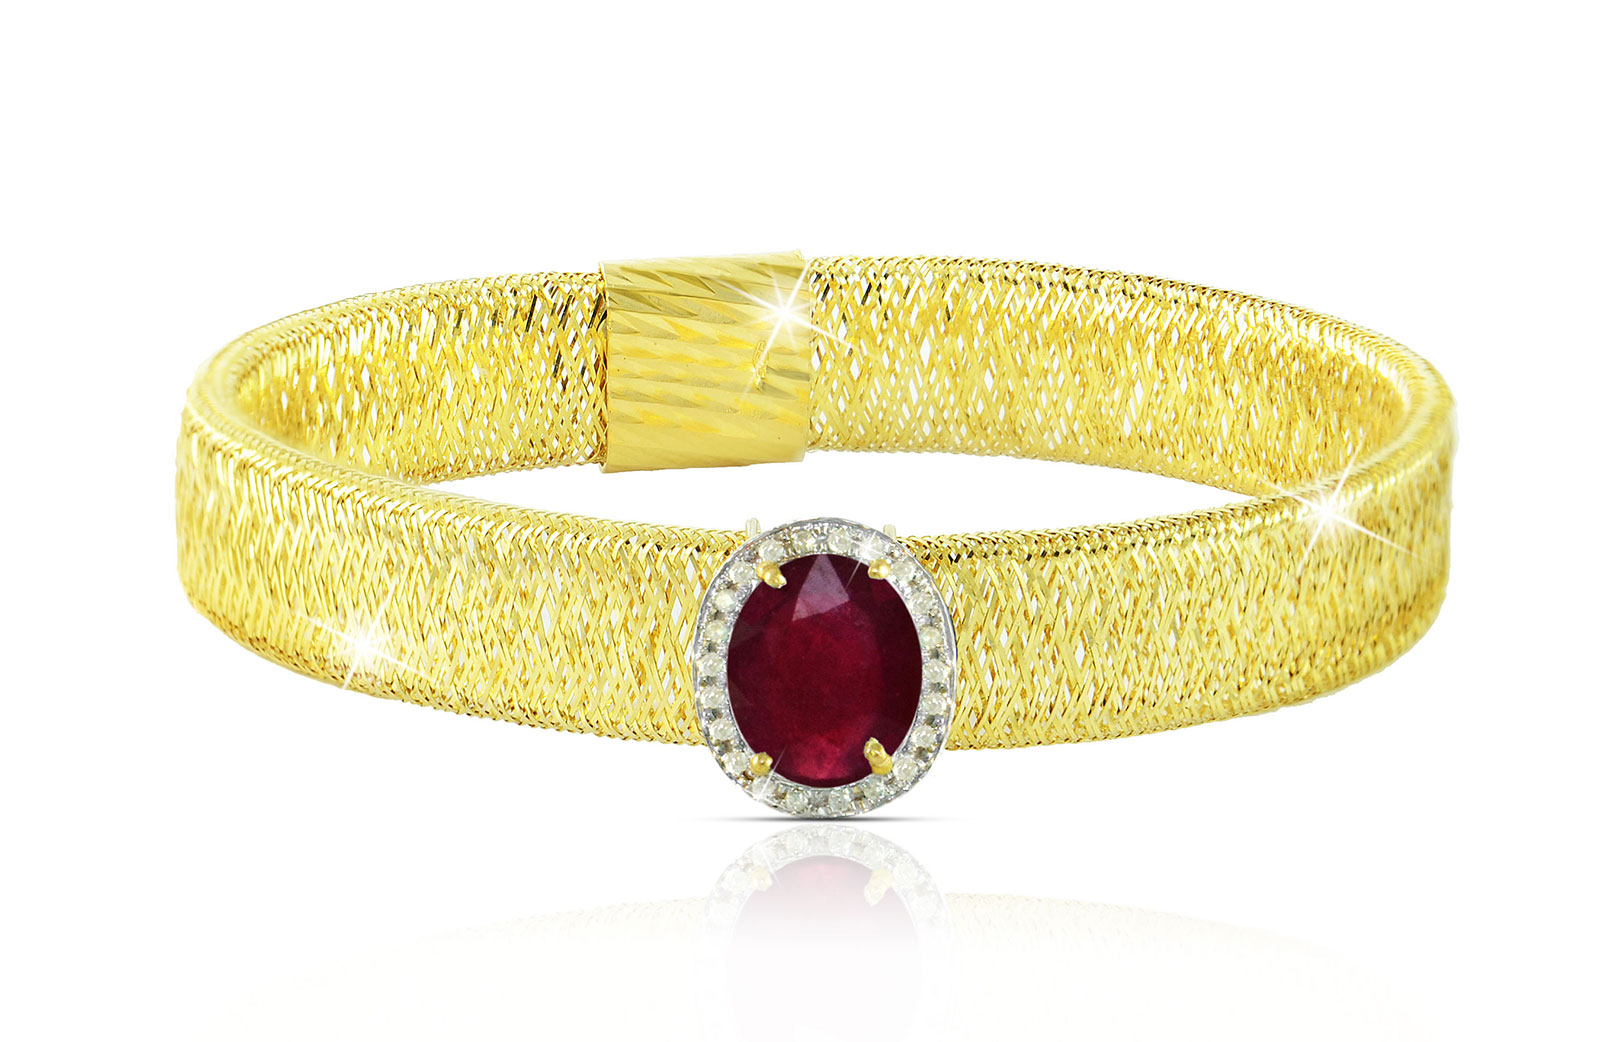 Vera Perla 18k  Gold 10mm Genuine Oval   Cut Ruby 0.12Ct Genuine Diamonds Bracelet